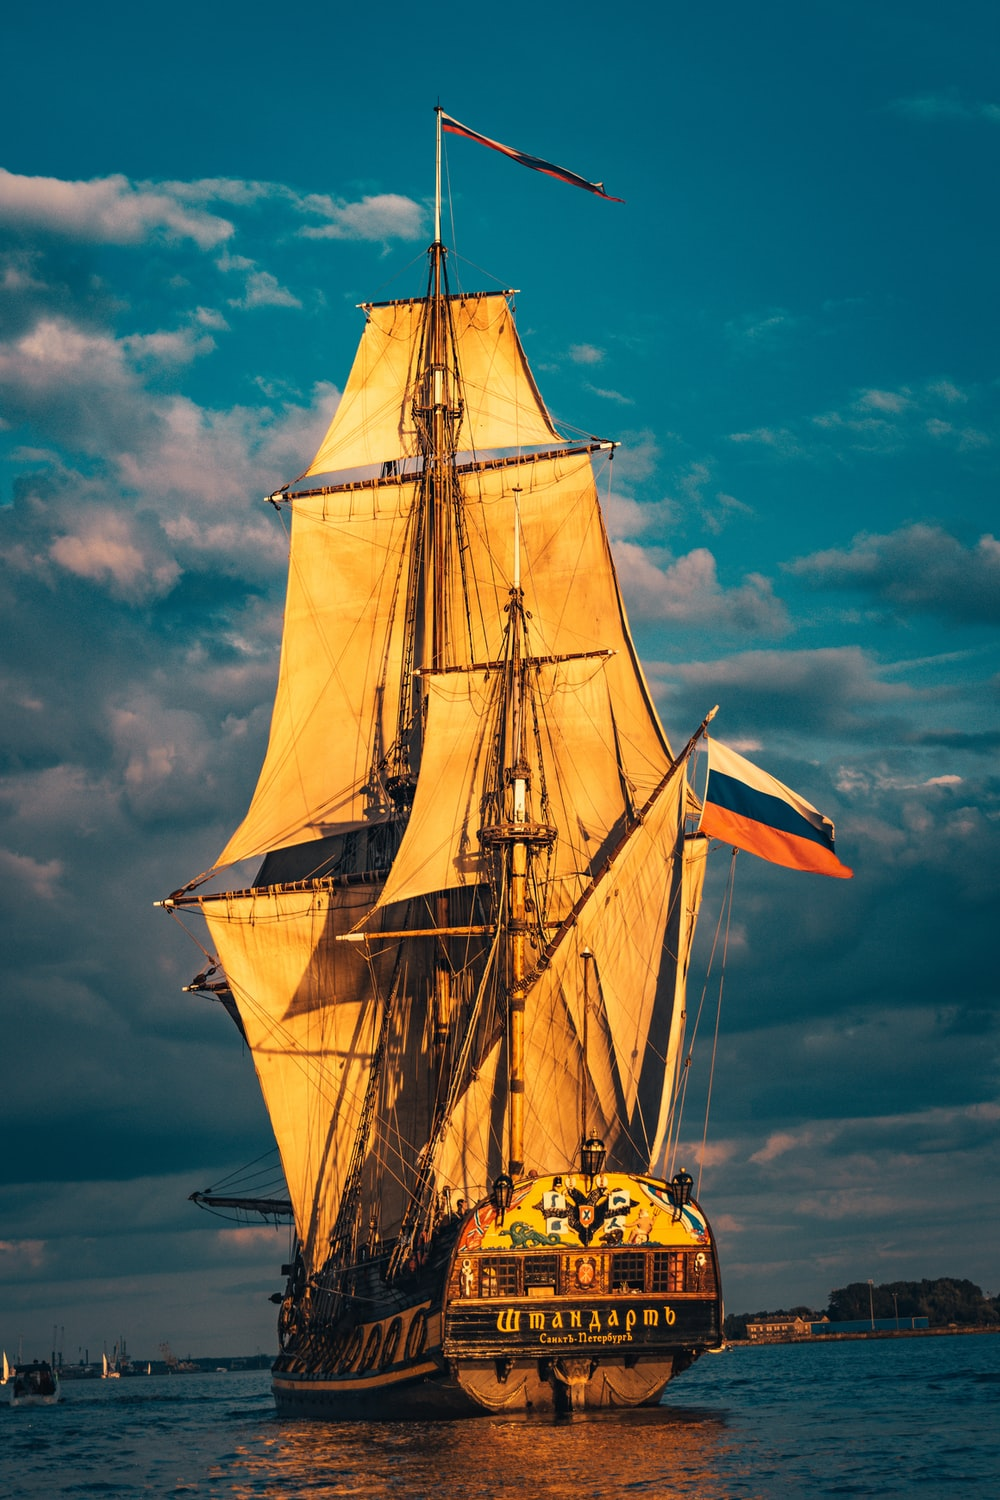 brown sail ship on sea under blue sky during daytime